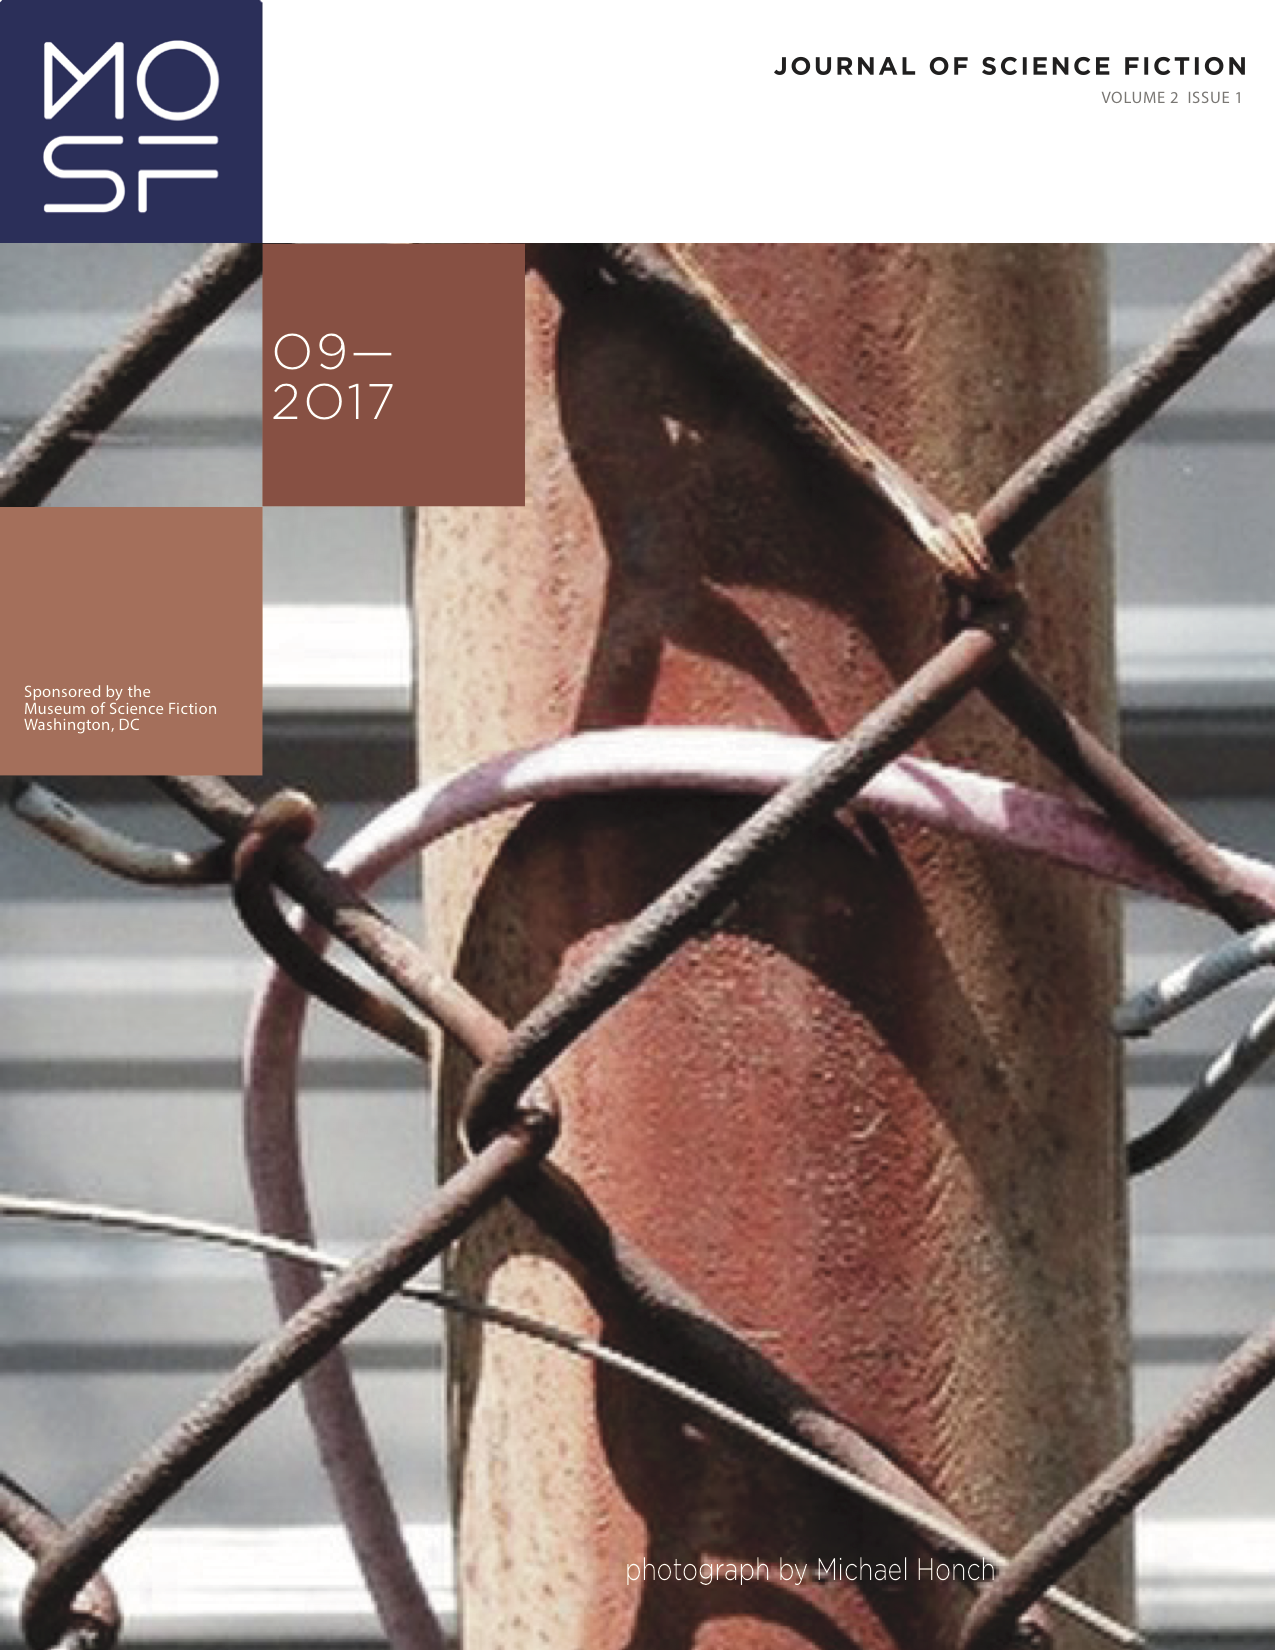 Cover art for Issue 2.1 (photograph of chain-link fence)